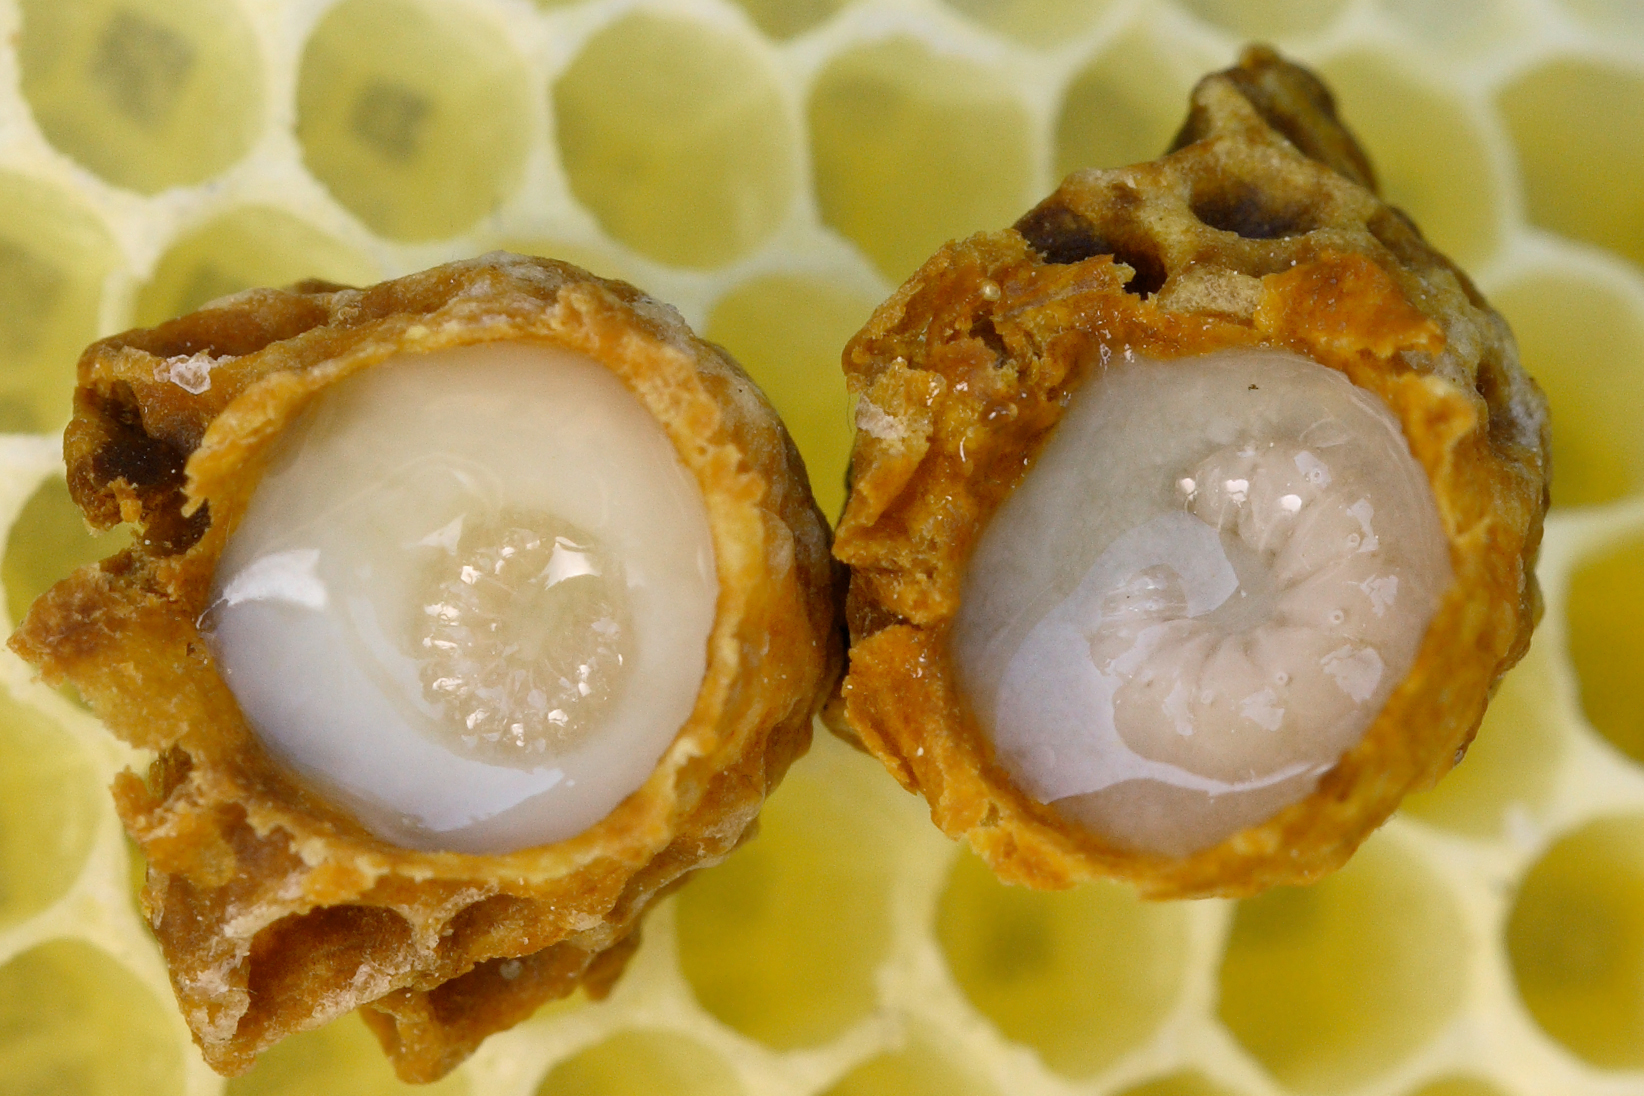 Benefits of Royal Jelly